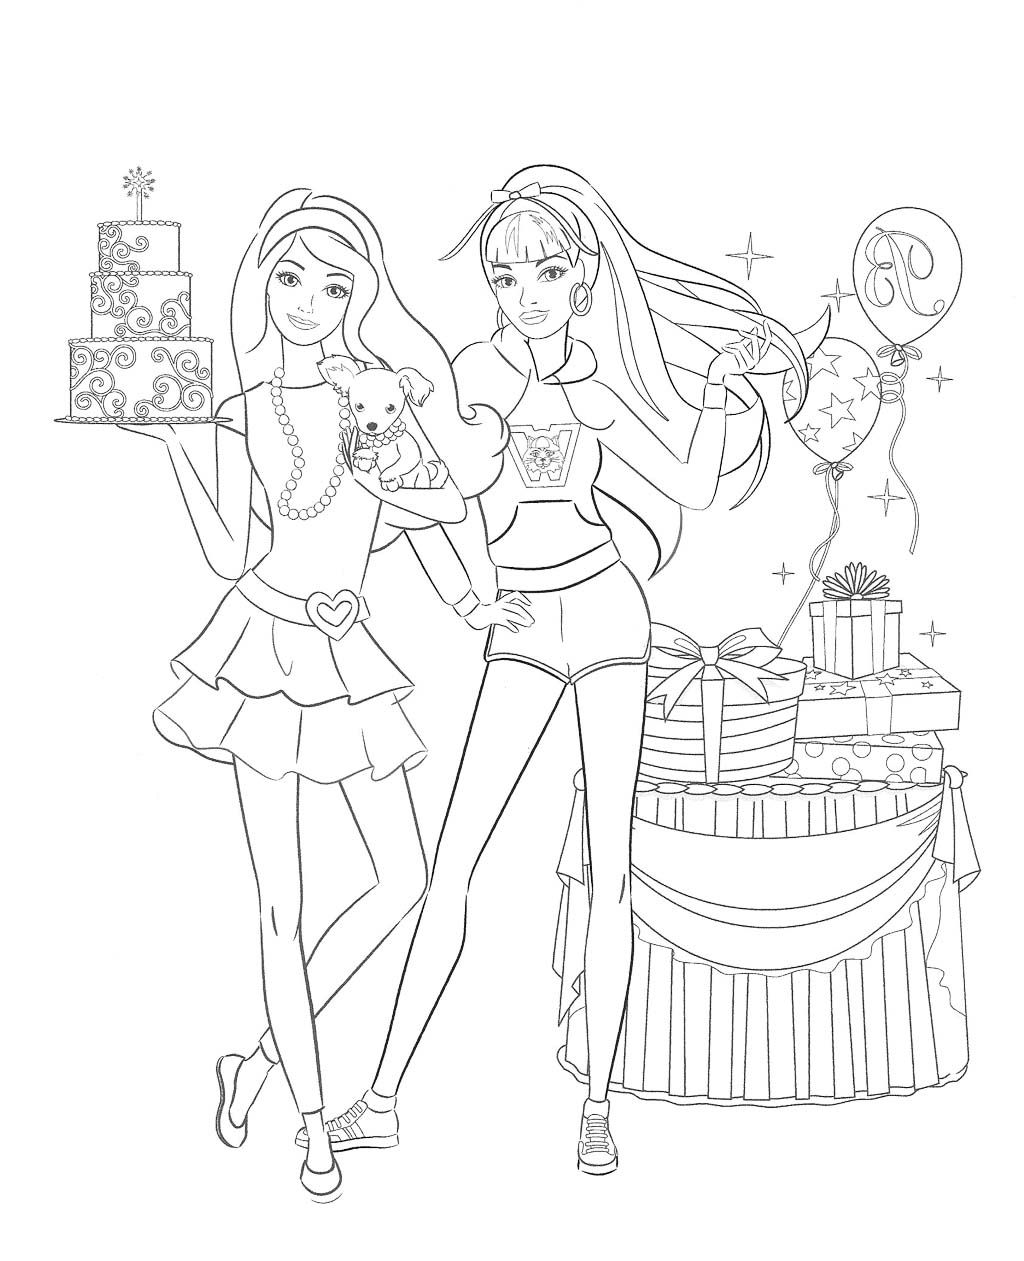 Barbie doll birthday coloring pages kids coloring pages for Barbie doll coloring pages